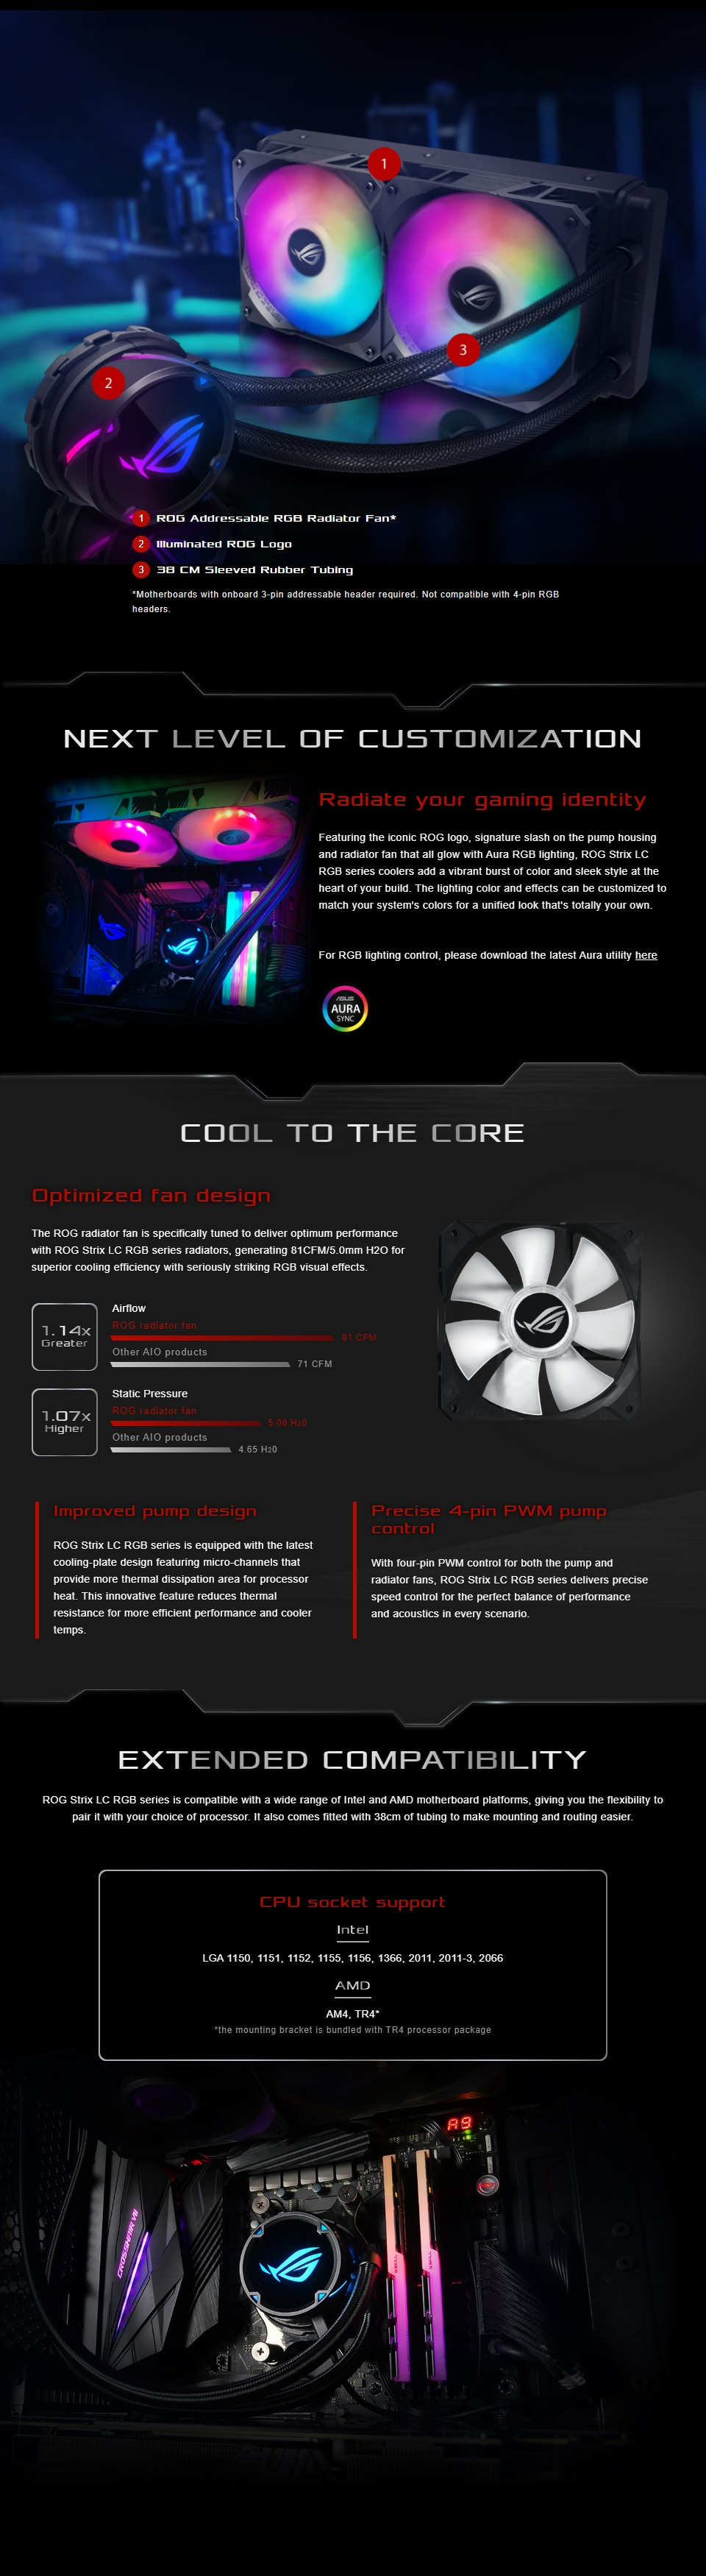 ASUS ROG Strix LC 240 ARGB AIO Liquid CPU Cooler features